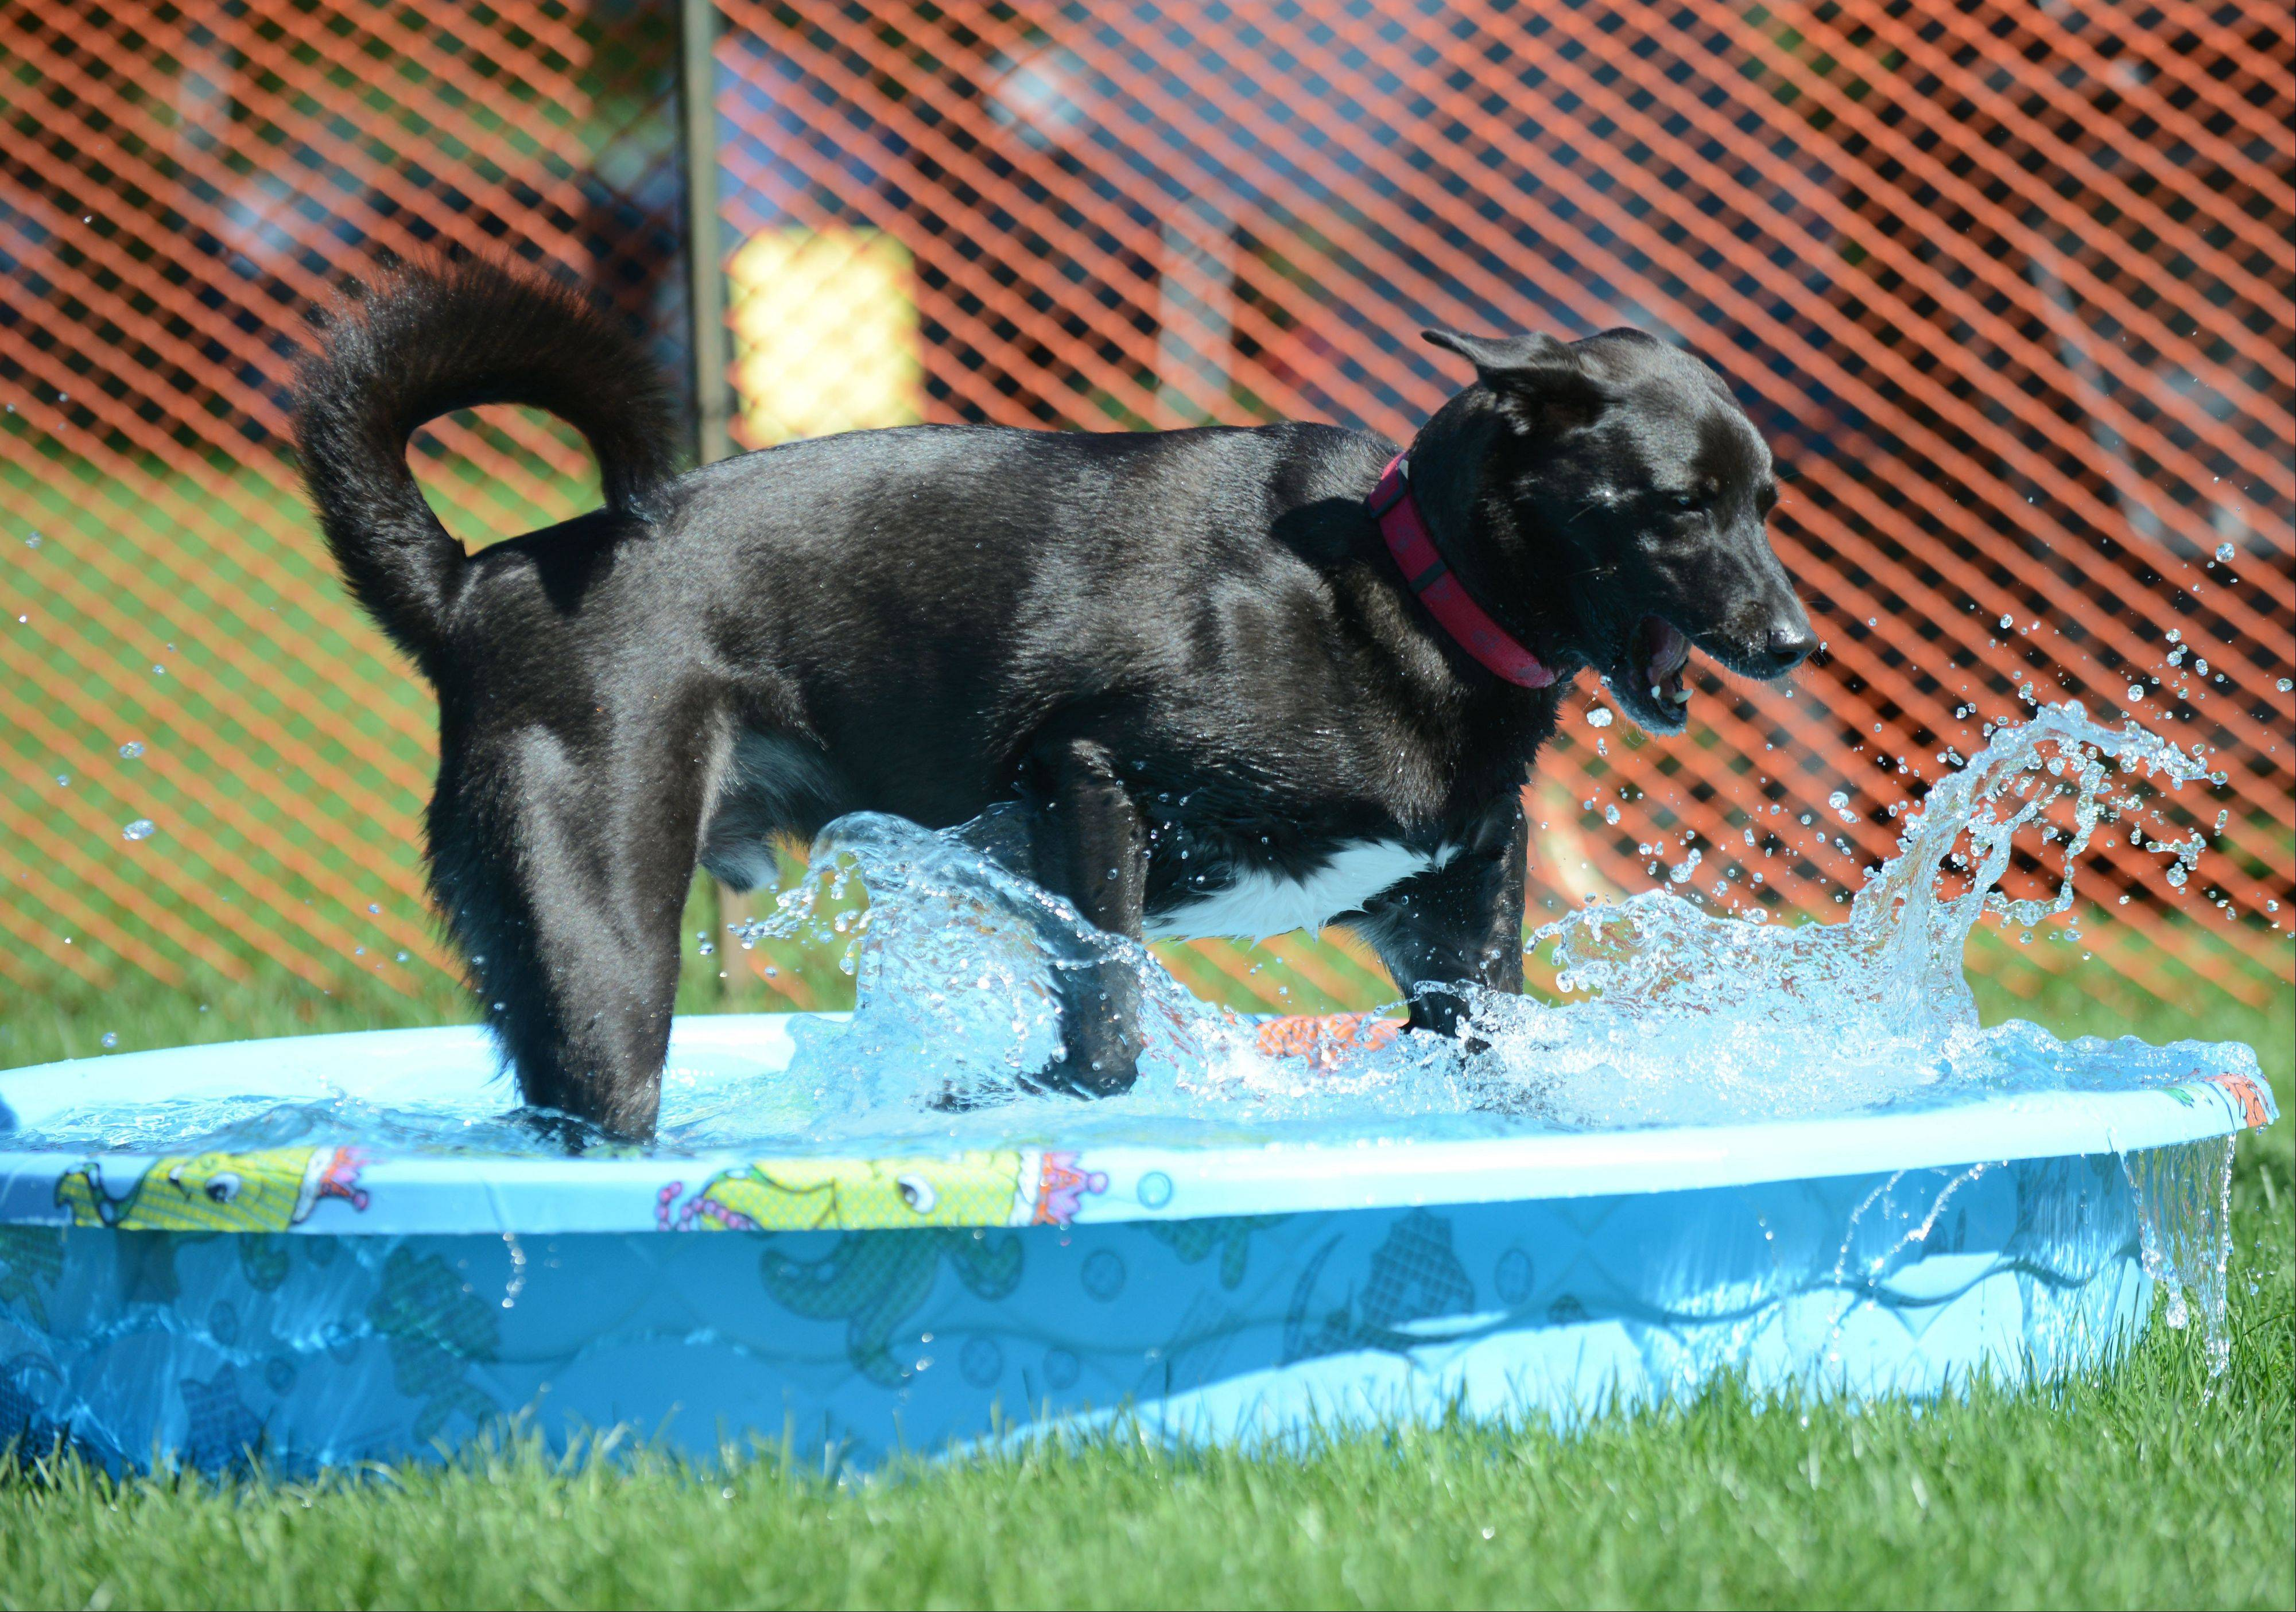 Cody McCarty of Wheaton splashes in a pool for dogs during the Cantigny Park annual Dog Days celebration Saturday.